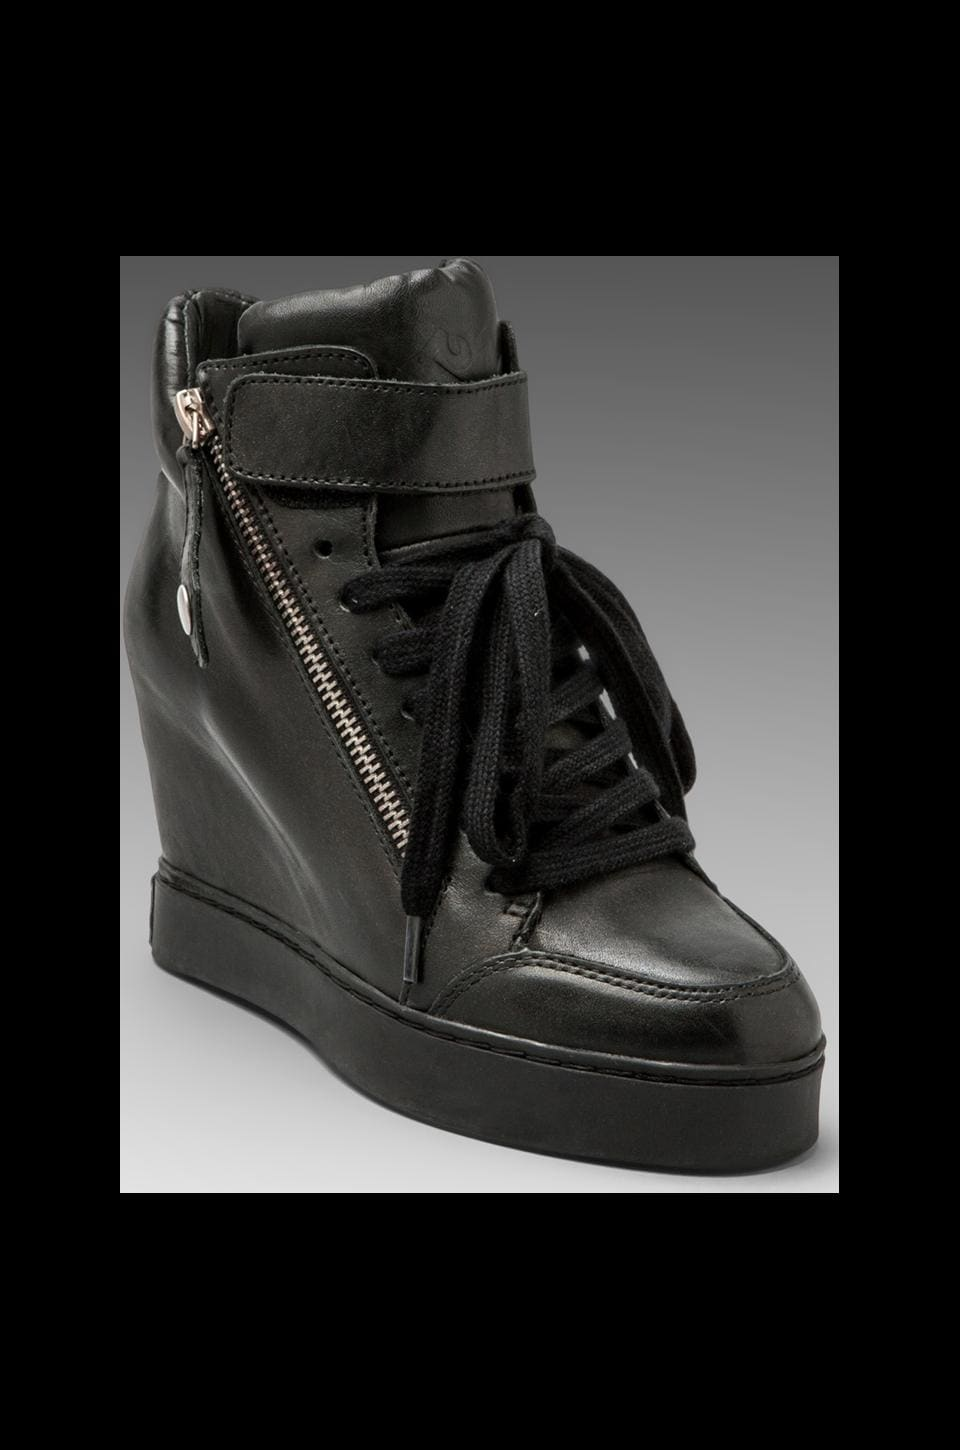 Ash Body Wedge Sneaker in Black